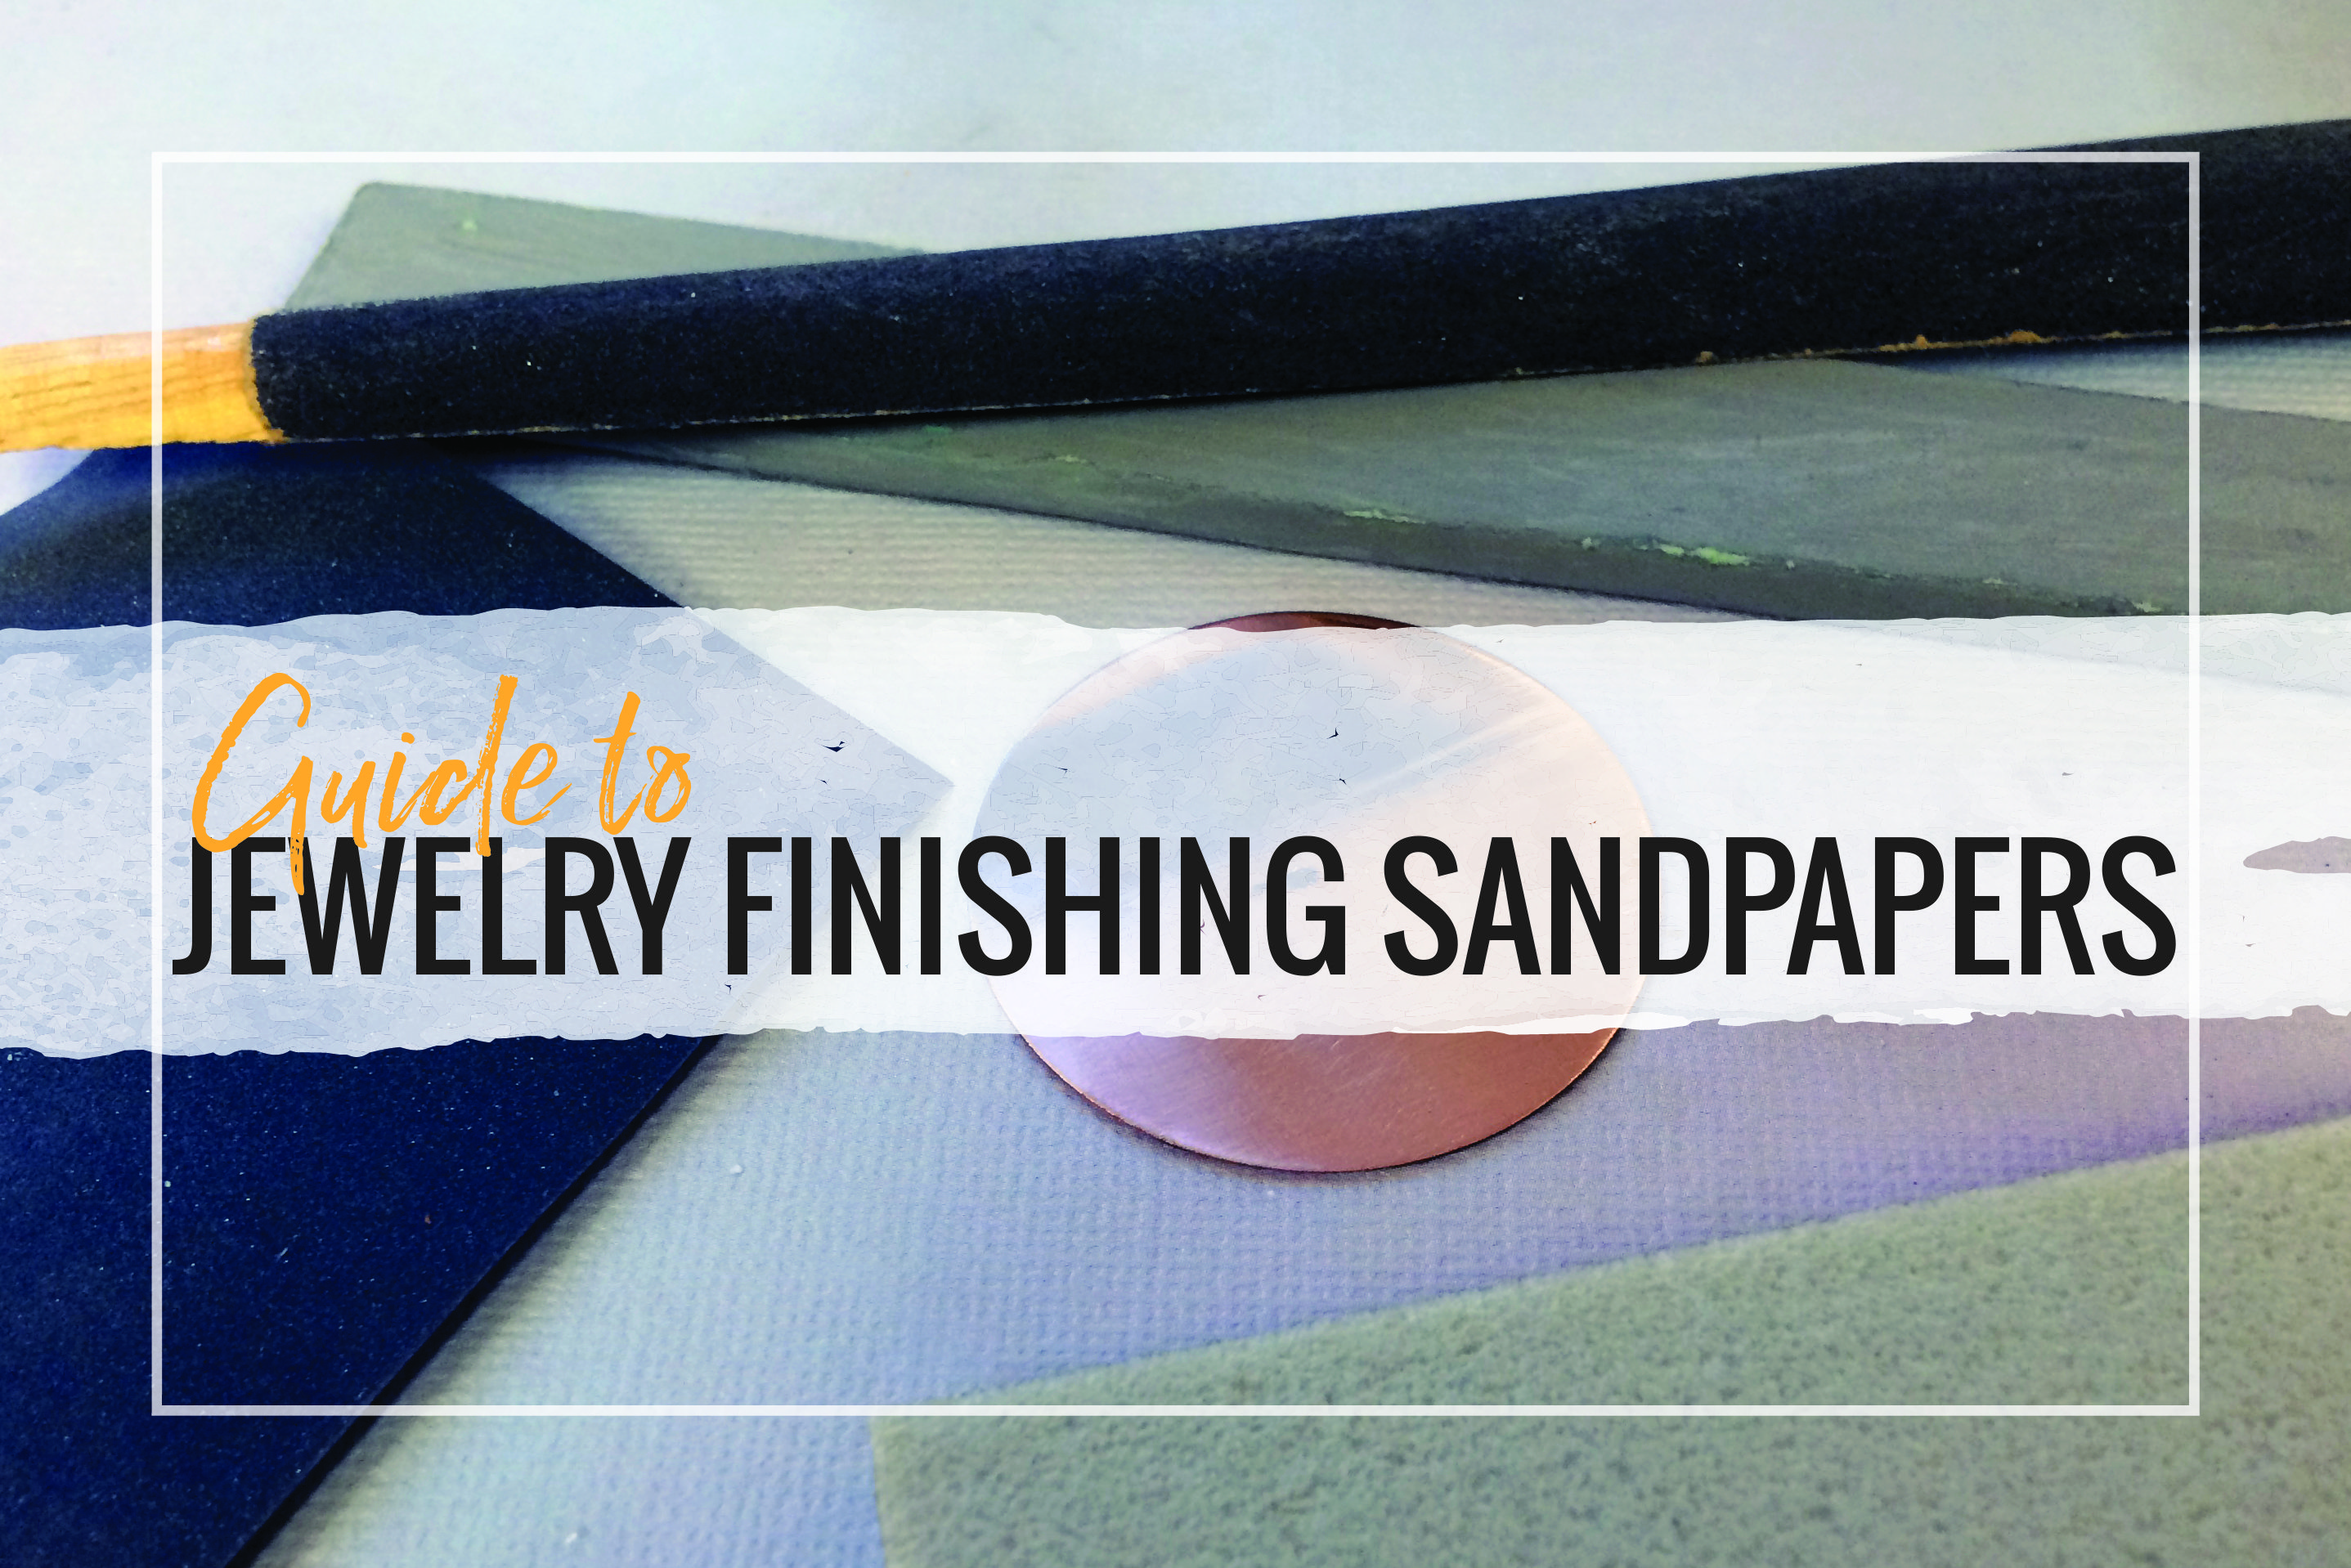 Check out our guide to jewelry finishing sandpapers and polishing papers. Learn what grit you need and compare different products for your studio.